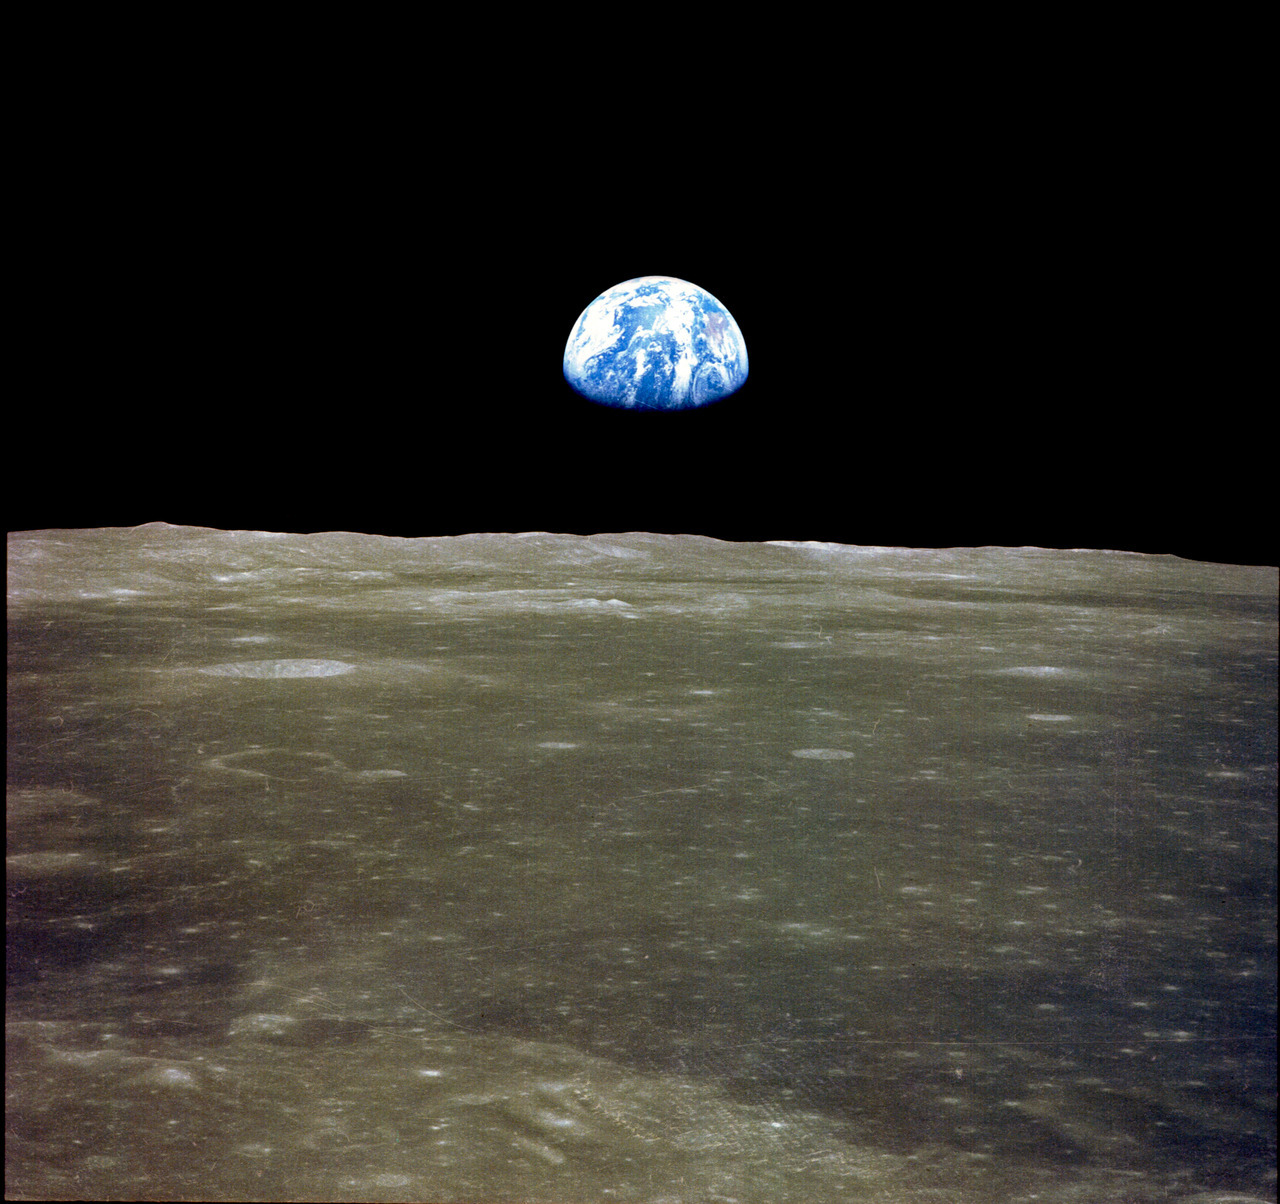 Earthrise. Apollo 11. NASA. 1969.